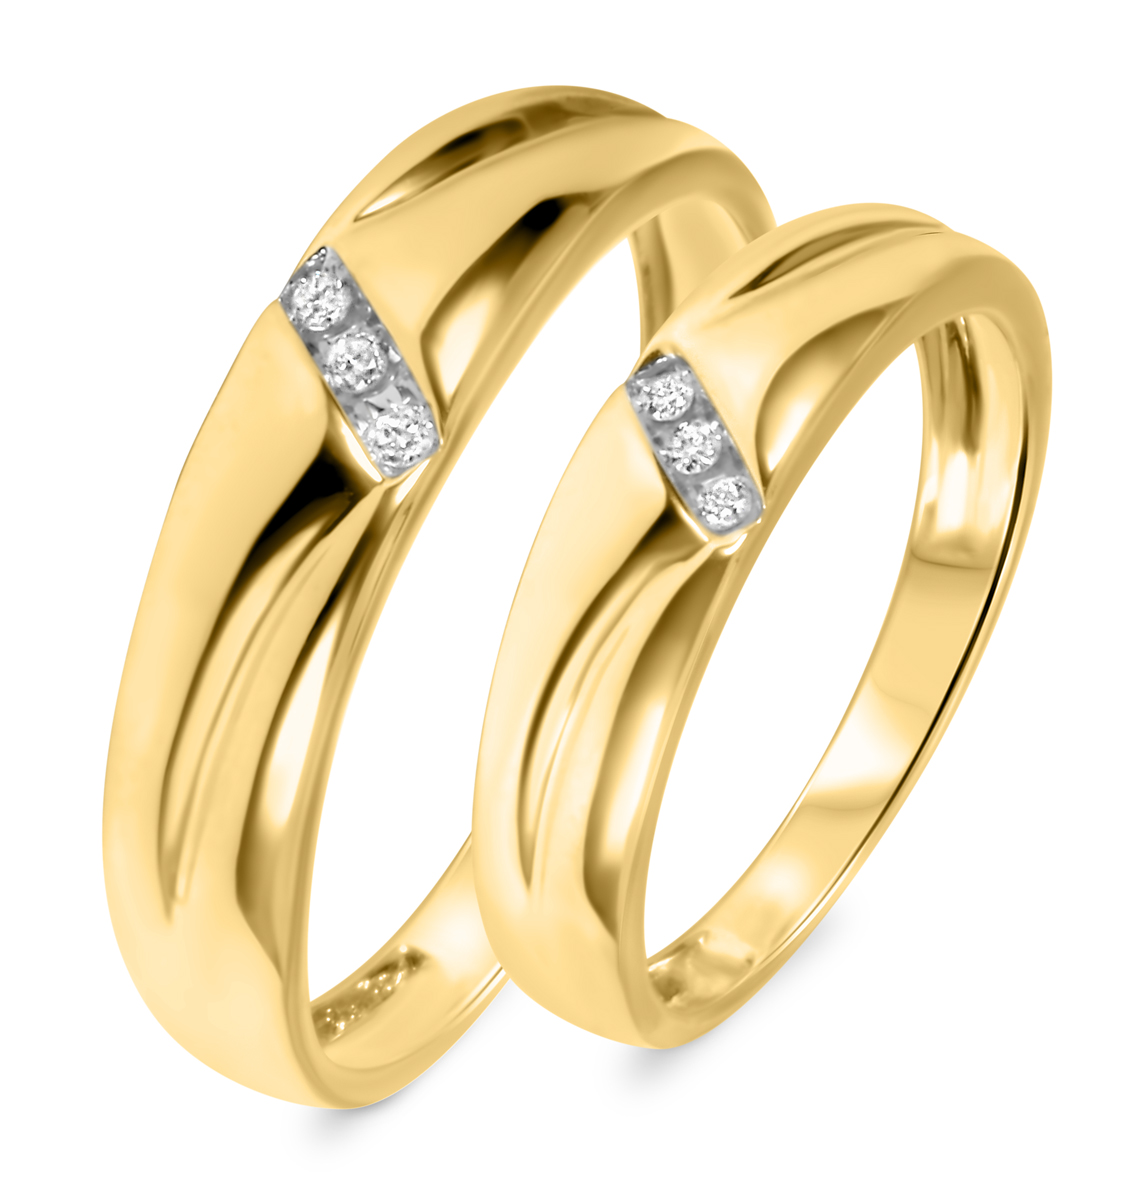 1 10 ct t w diamond his and hers wedding band set 14k yellow gold my trio rings wb539y14k. Black Bedroom Furniture Sets. Home Design Ideas